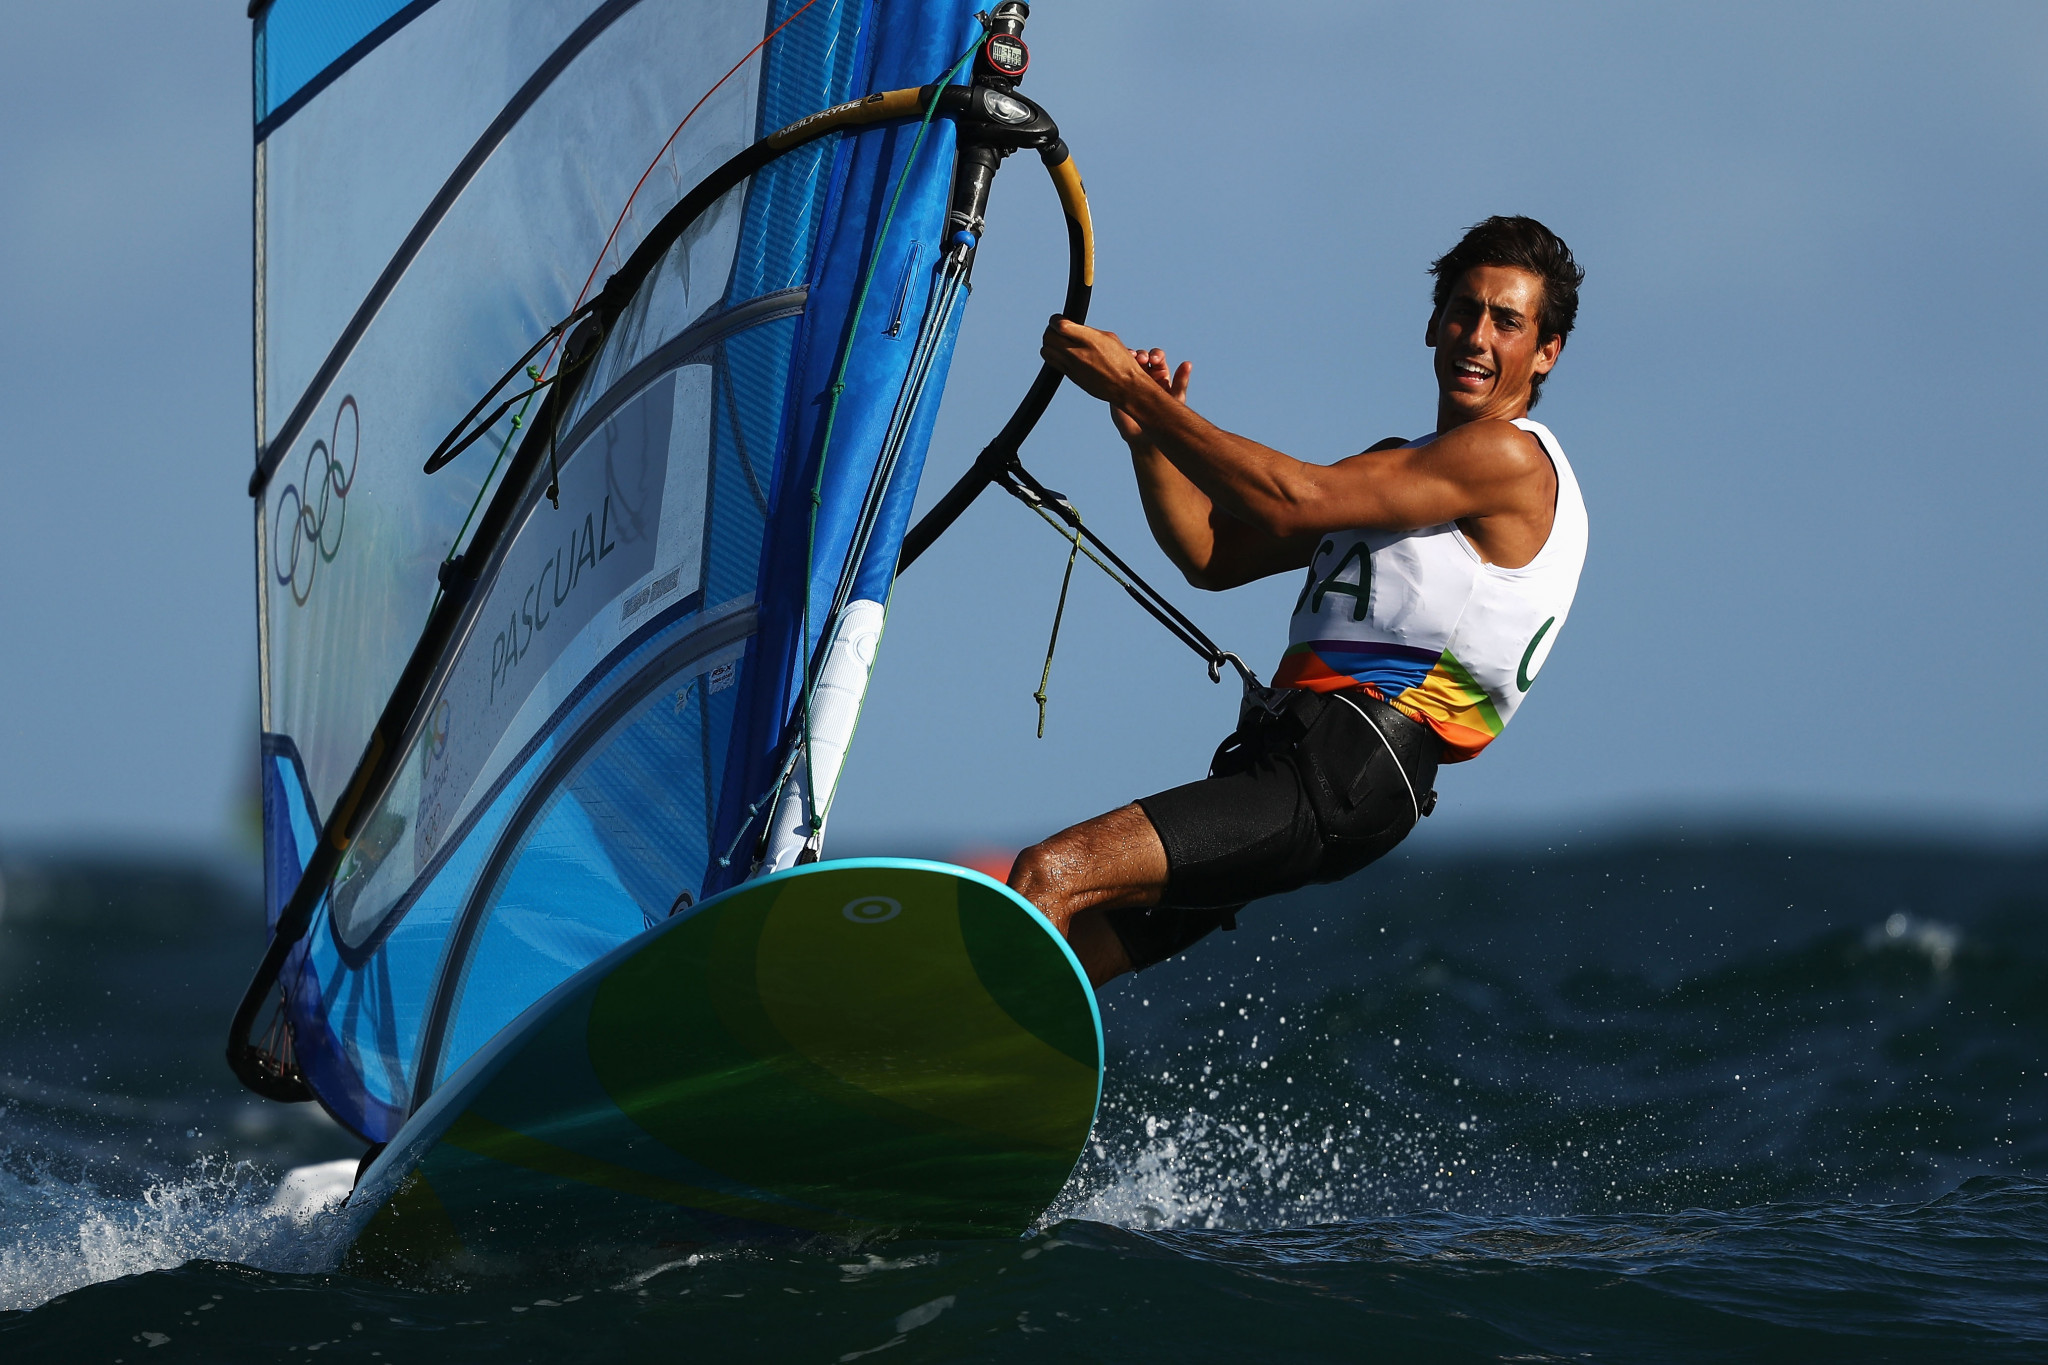 Home RS:X athlete Pedro Pascual enjoyed a day of limited racing at the Sailing World Cup in Miami ©Getty Images